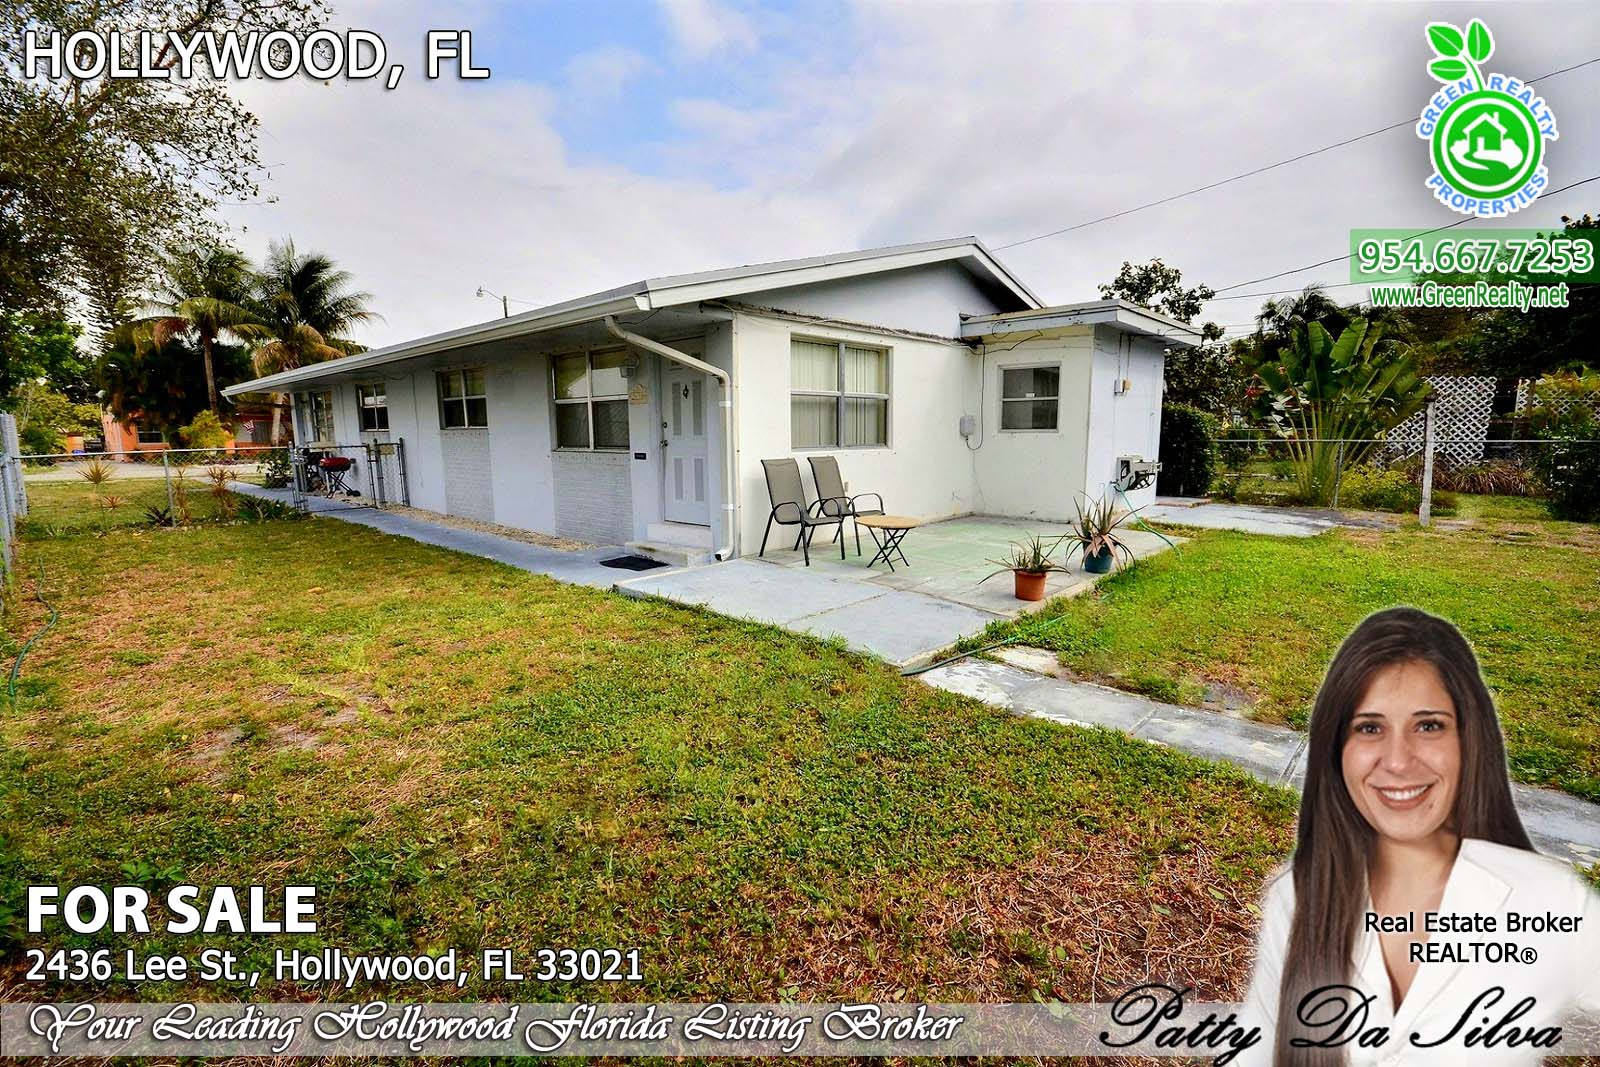 Hollywood Florida homes for investors